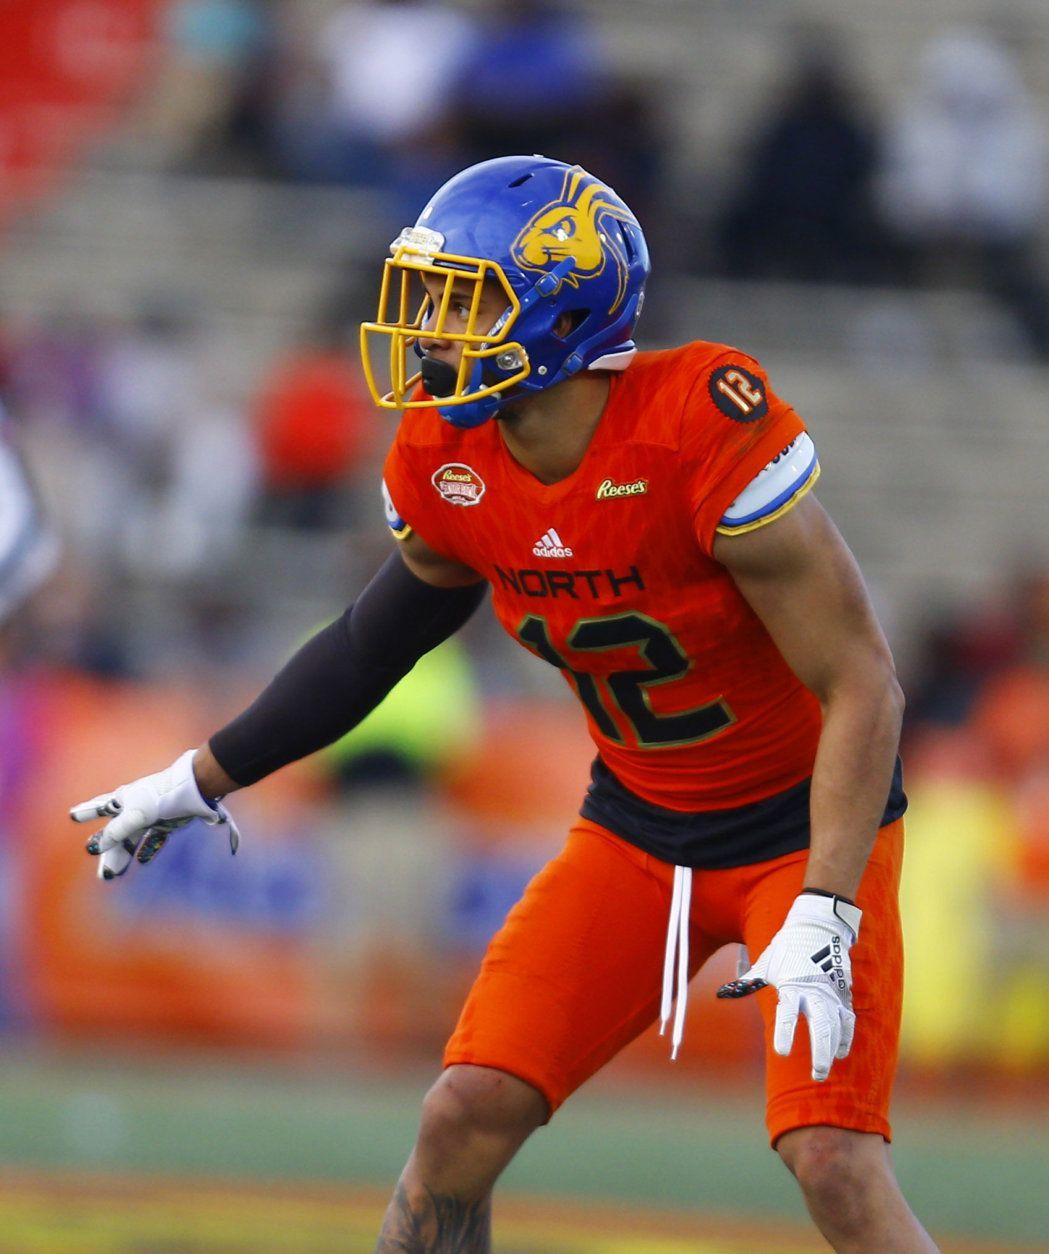 North defensive back Jordan Brown of South Dakota State (12) during the second half of the Senior Bowl college football game, Saturday, Jan. 26, 2019, in Mobile, Ala. (AP Photo/Butch Dill)